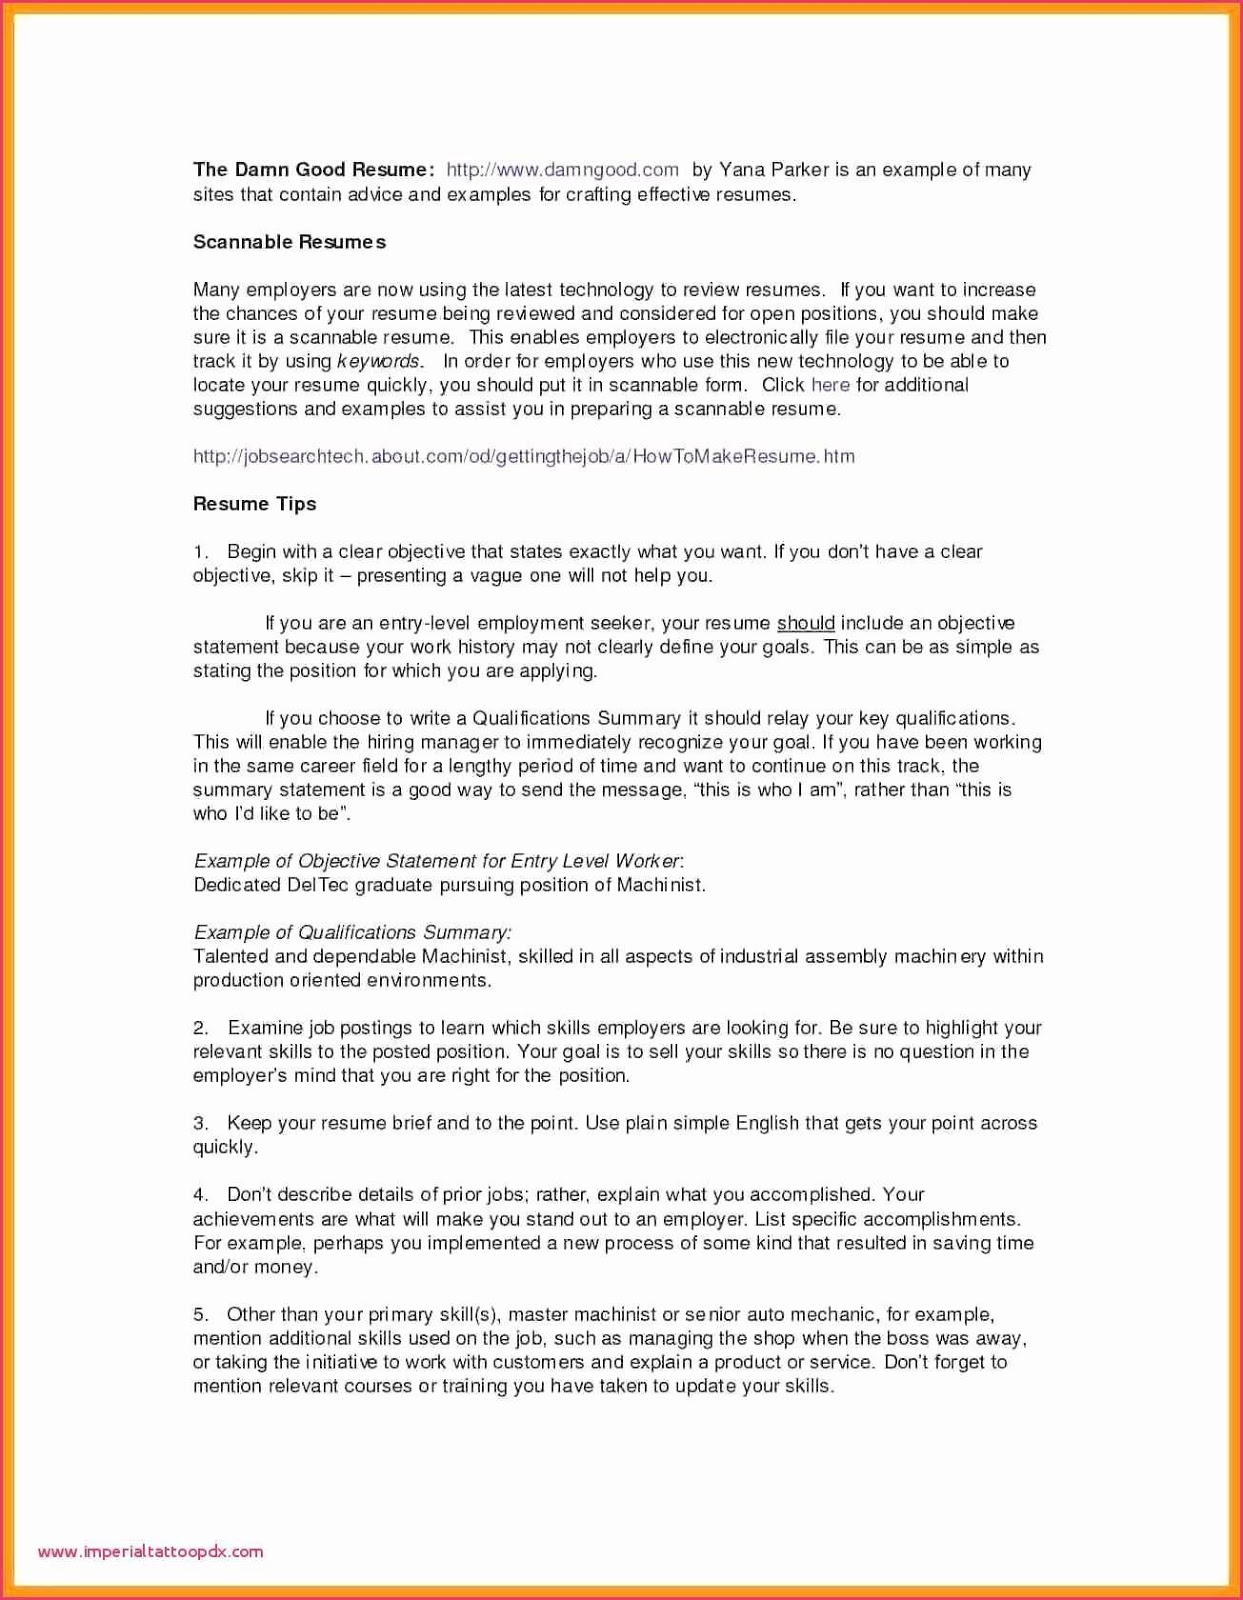 Product Manager Resume Sample, product manager resume sample pdf, product manager resume sample india, product manager resume sample download, product manager sample resume, product marketing manager resume sample, product development manager resume sample, software product manager resume sample, digital product manager resume sample